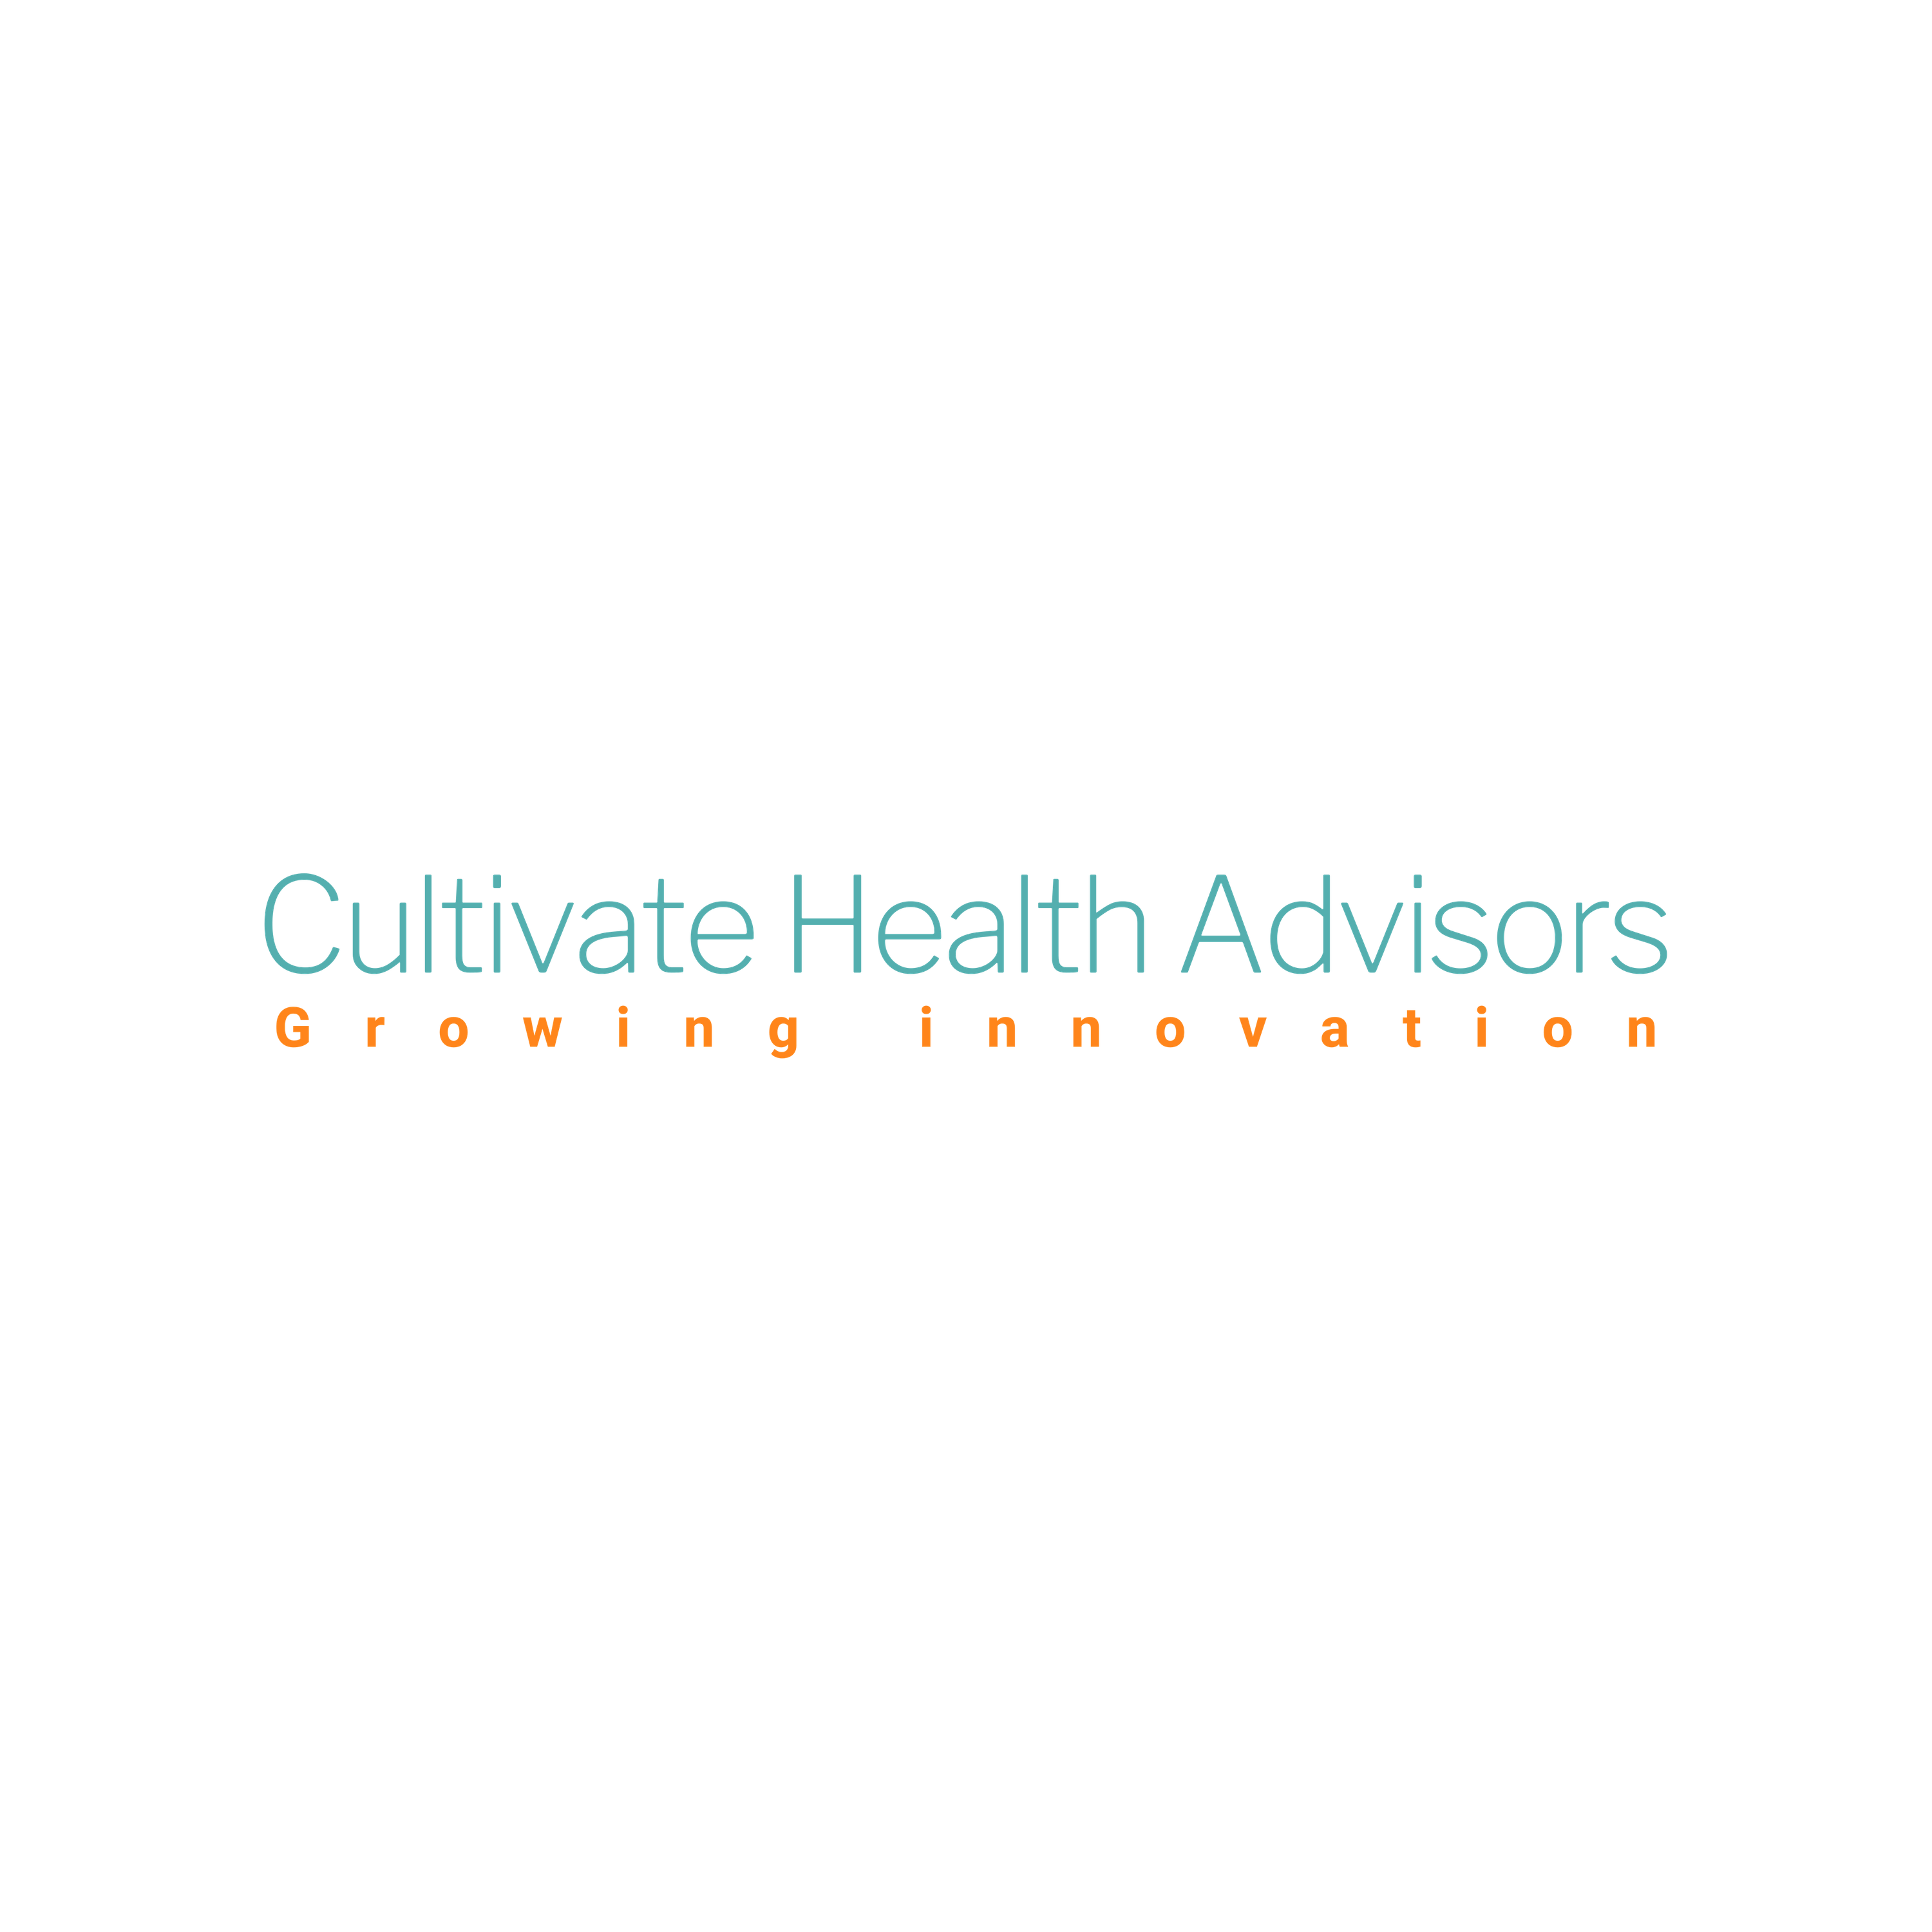 Cultivate Health Advisors